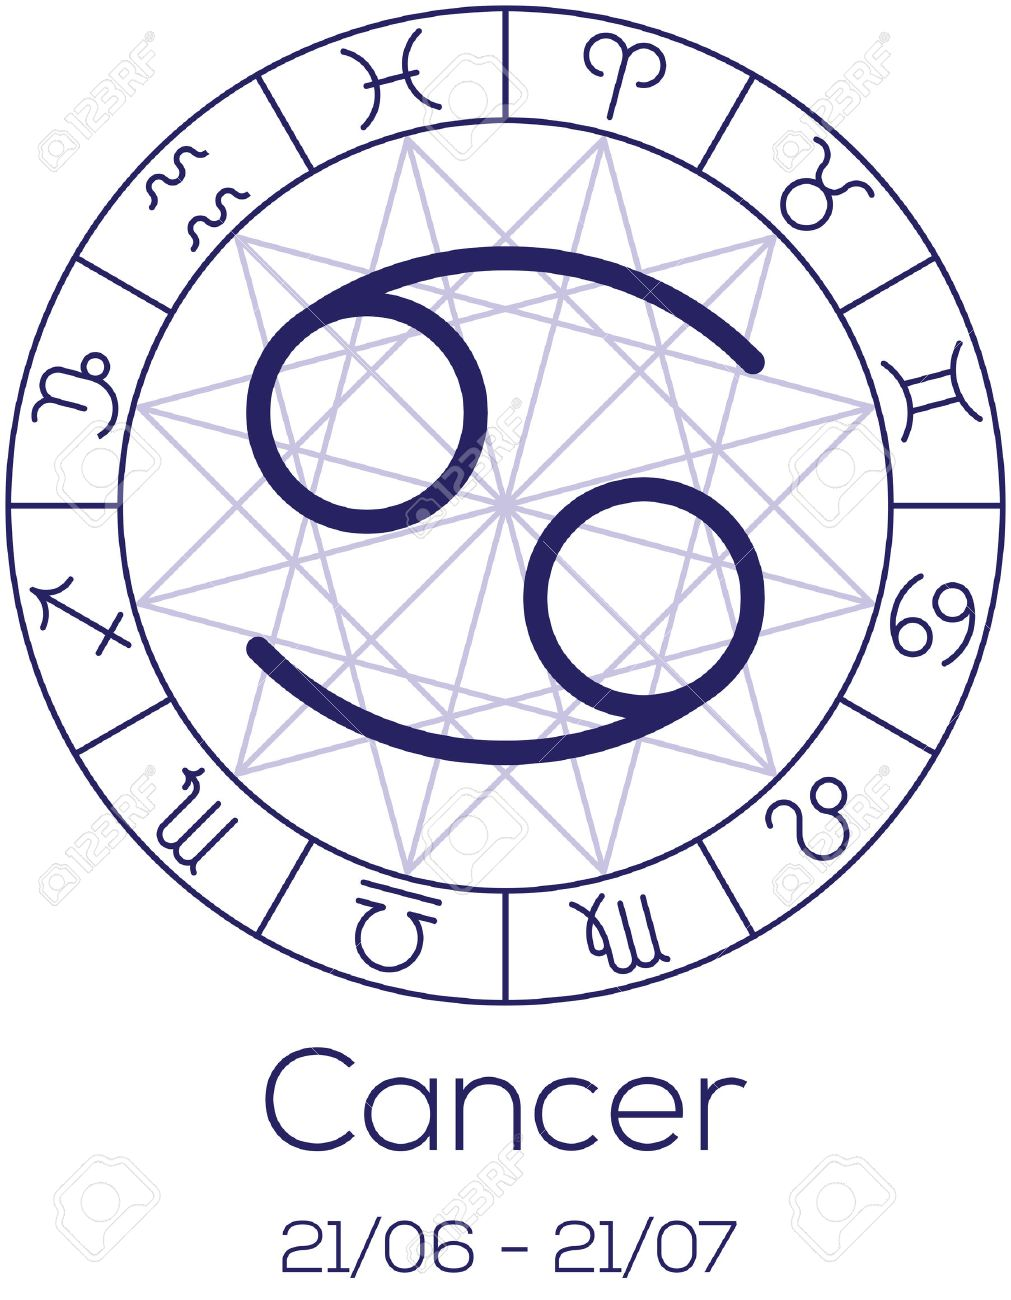 Zodiac sign cancer astrological symbol in wheel with polygonal zodiac sign cancer astrological symbol in wheel with polygonal background astrology chart in nvjuhfo Gallery